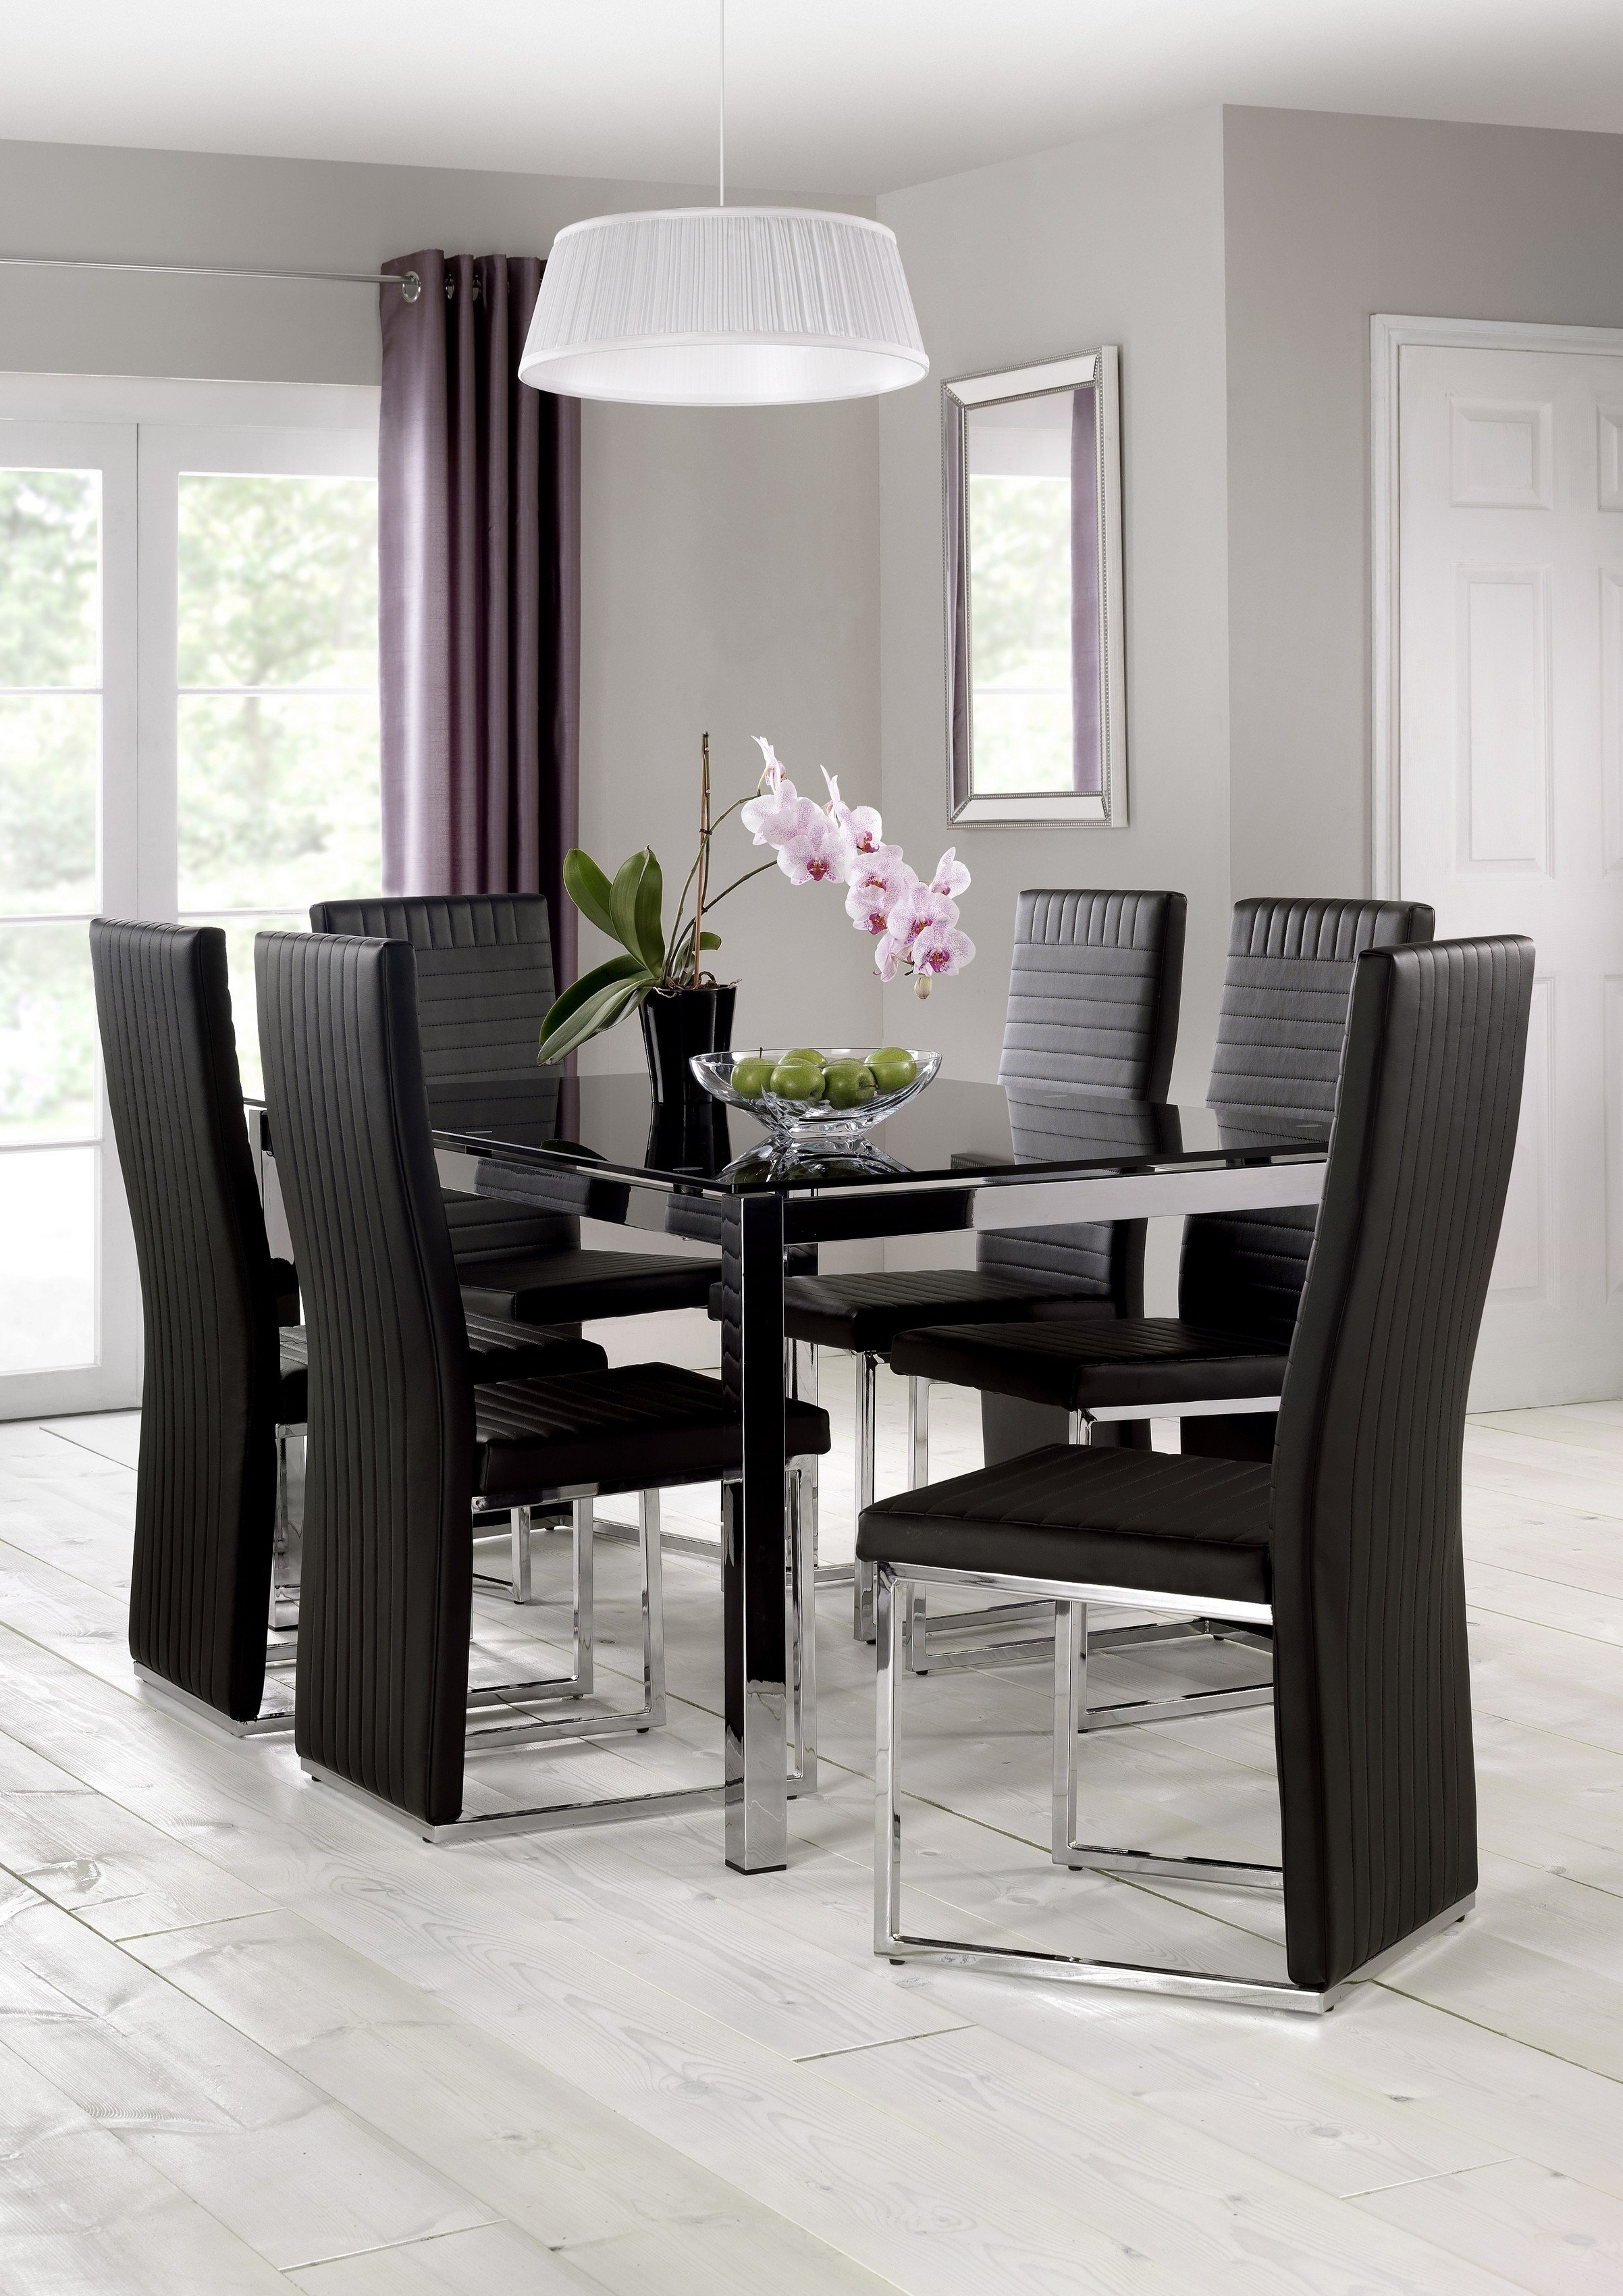 Well Liked Chrome Glass Dining Tables Inside Julian Bowentempo Chrome And Black Glass Dining Table (View 19 of 25)